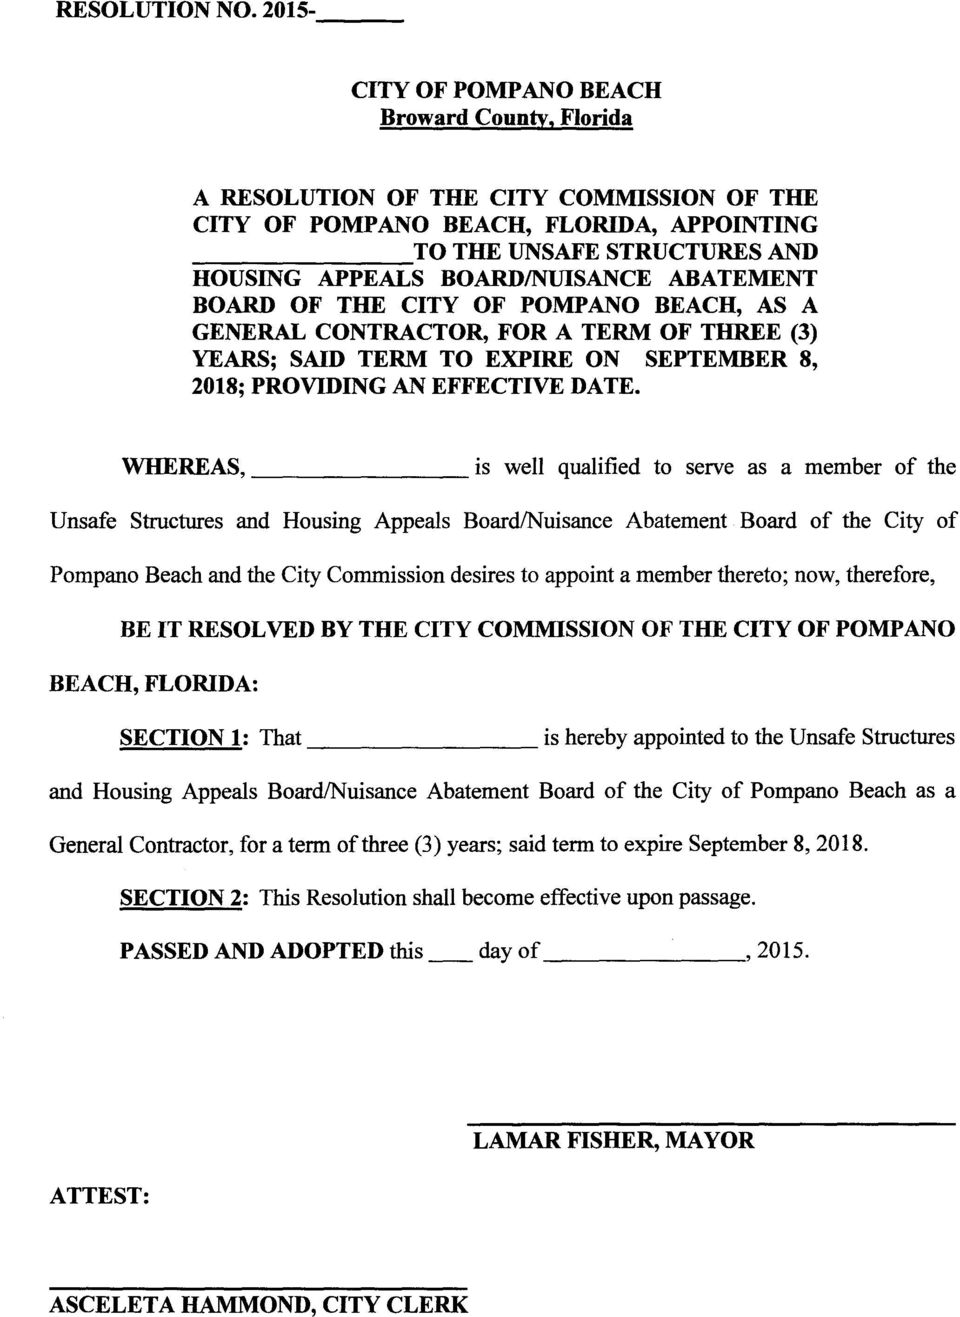 ABATEMENT BOARD OF THE CITY OF POMPANO BEACH, AS A GENERAL CONTRACTOR, FOR A TERM OF THREE (3) YEARS; SAID TERM TO EXPIRE ON SEPTEMBER 8, 2018; PROVIDING AN EFFECTIVE DATE.